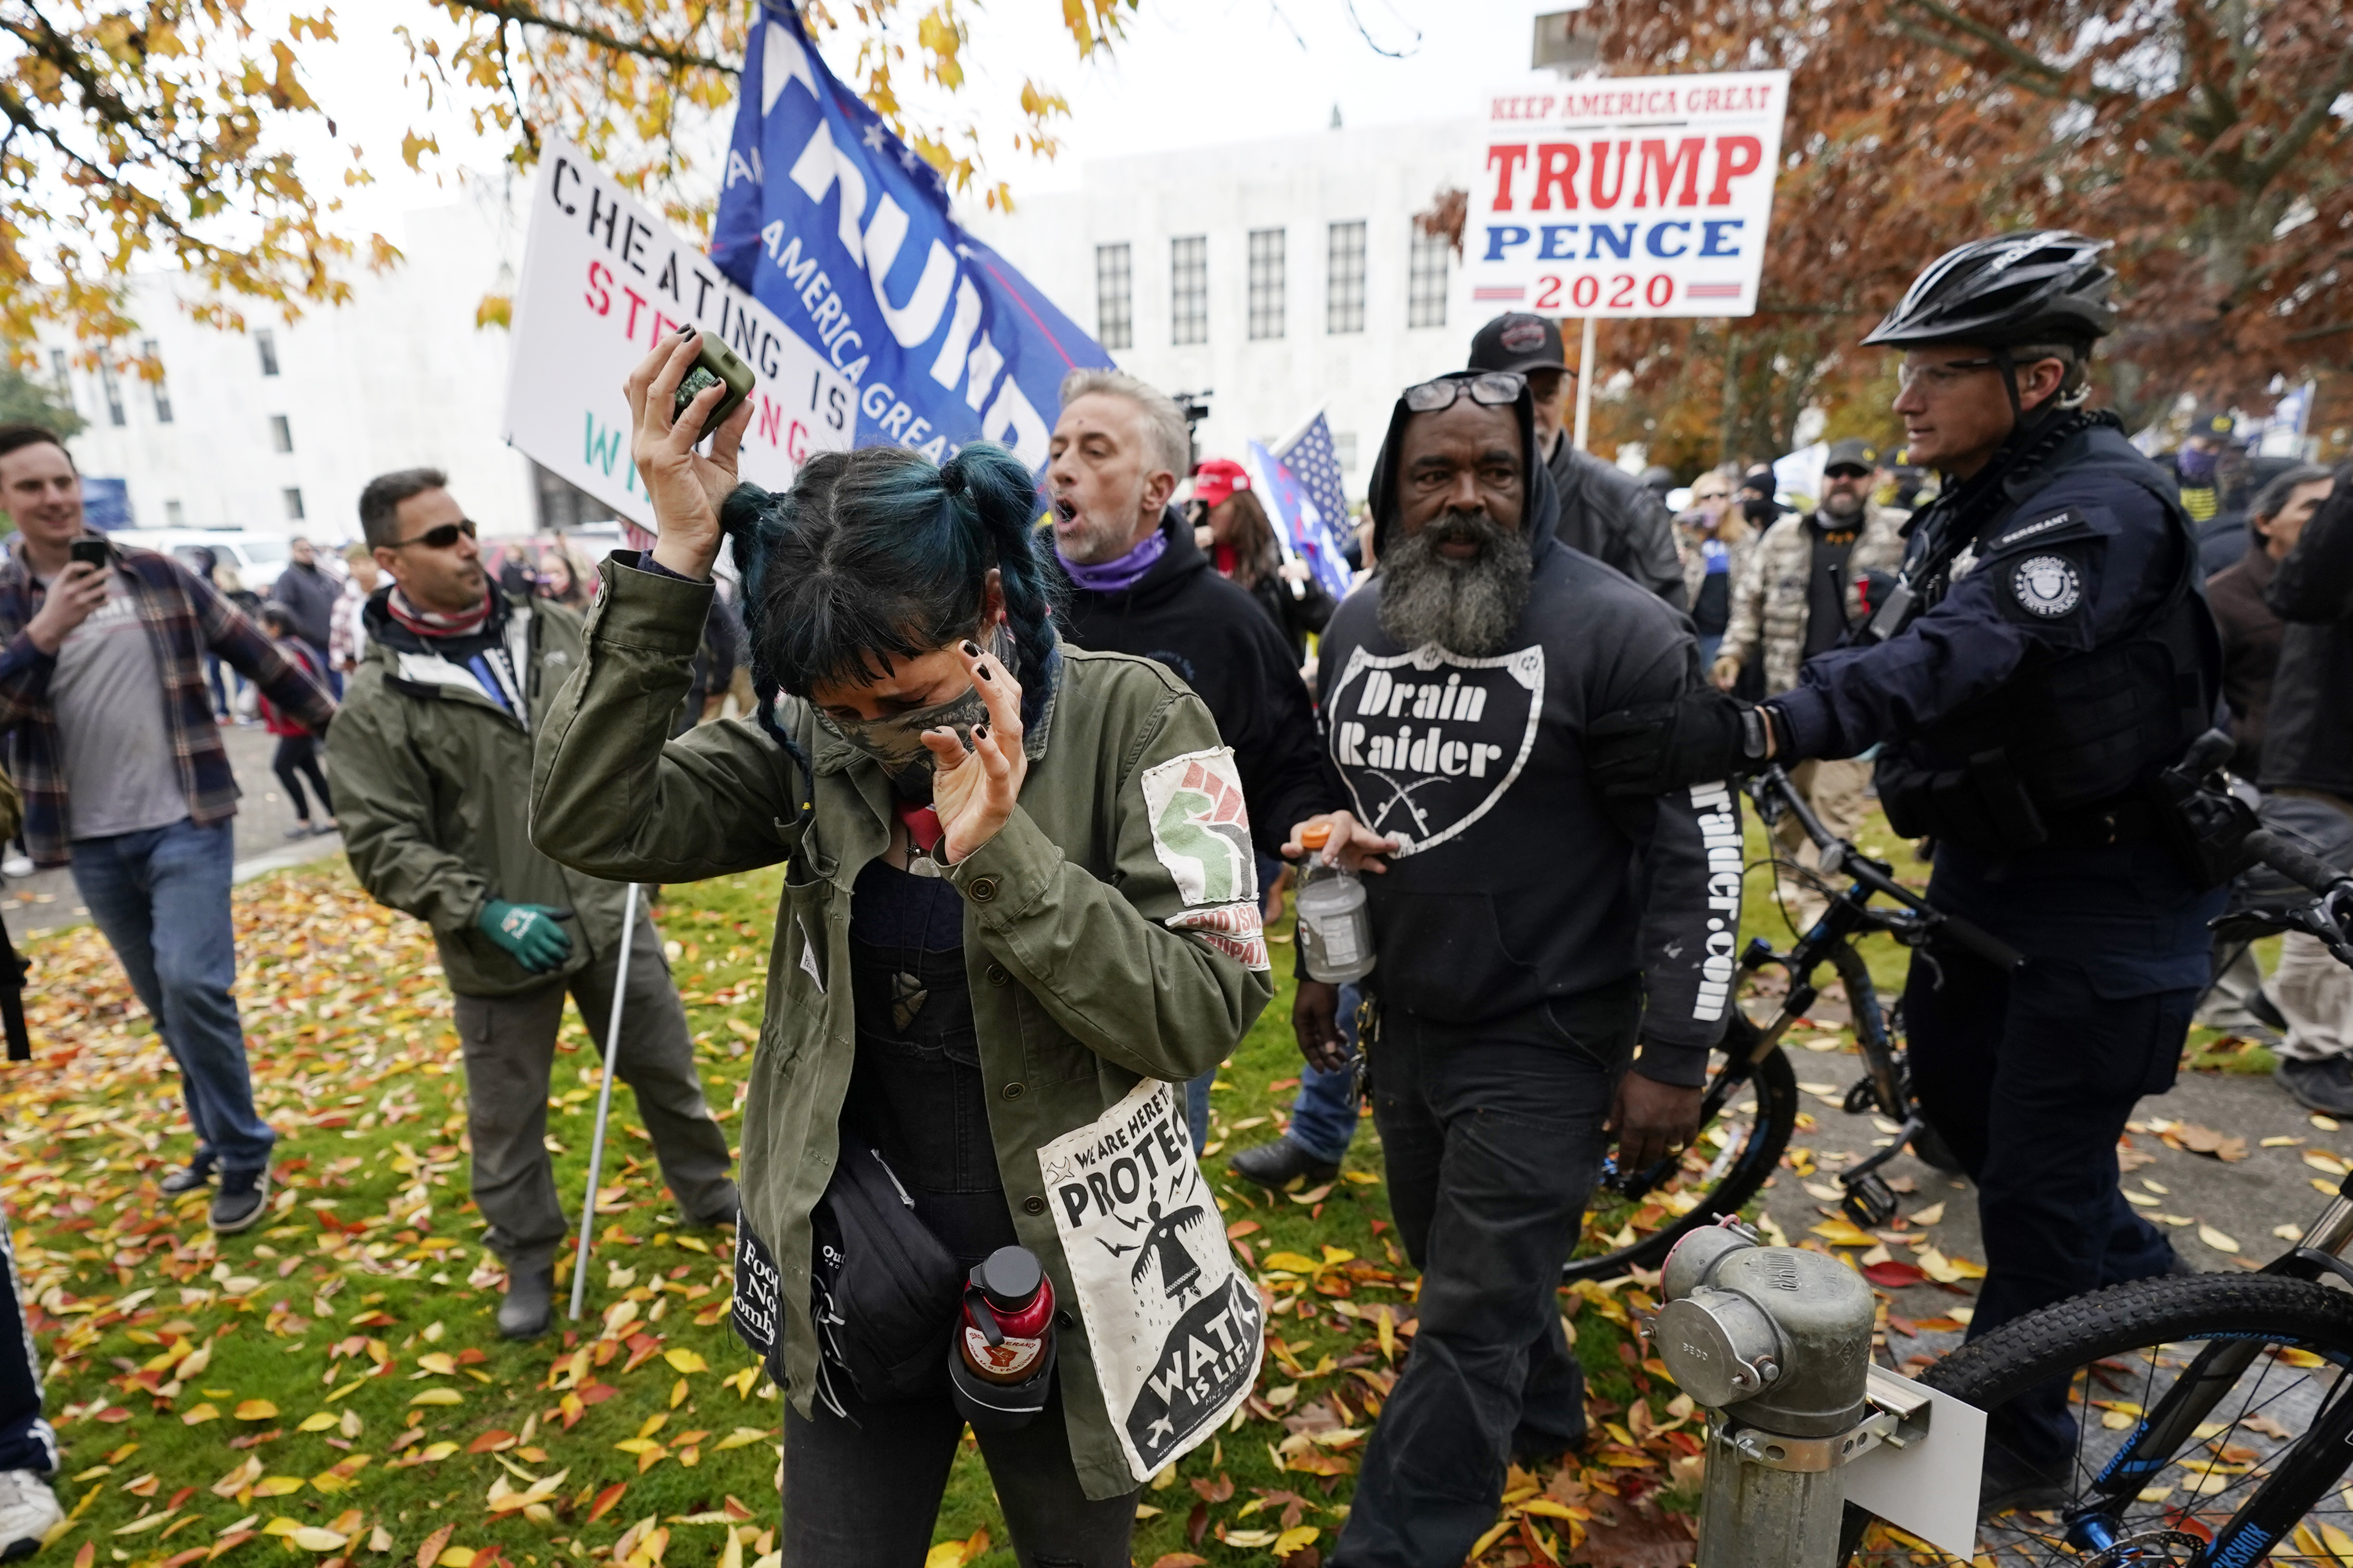 Supporters of President Trump follow a counter-protester as a police officer intervenes in front of the Oregon State Capitol building Saturday, Nov 7, 2020, in Salem, Ore., after Democrat Joe Biden defeated Trump to become 46th president of the United States. (AP Photo/Marcio Jose Sanchez)